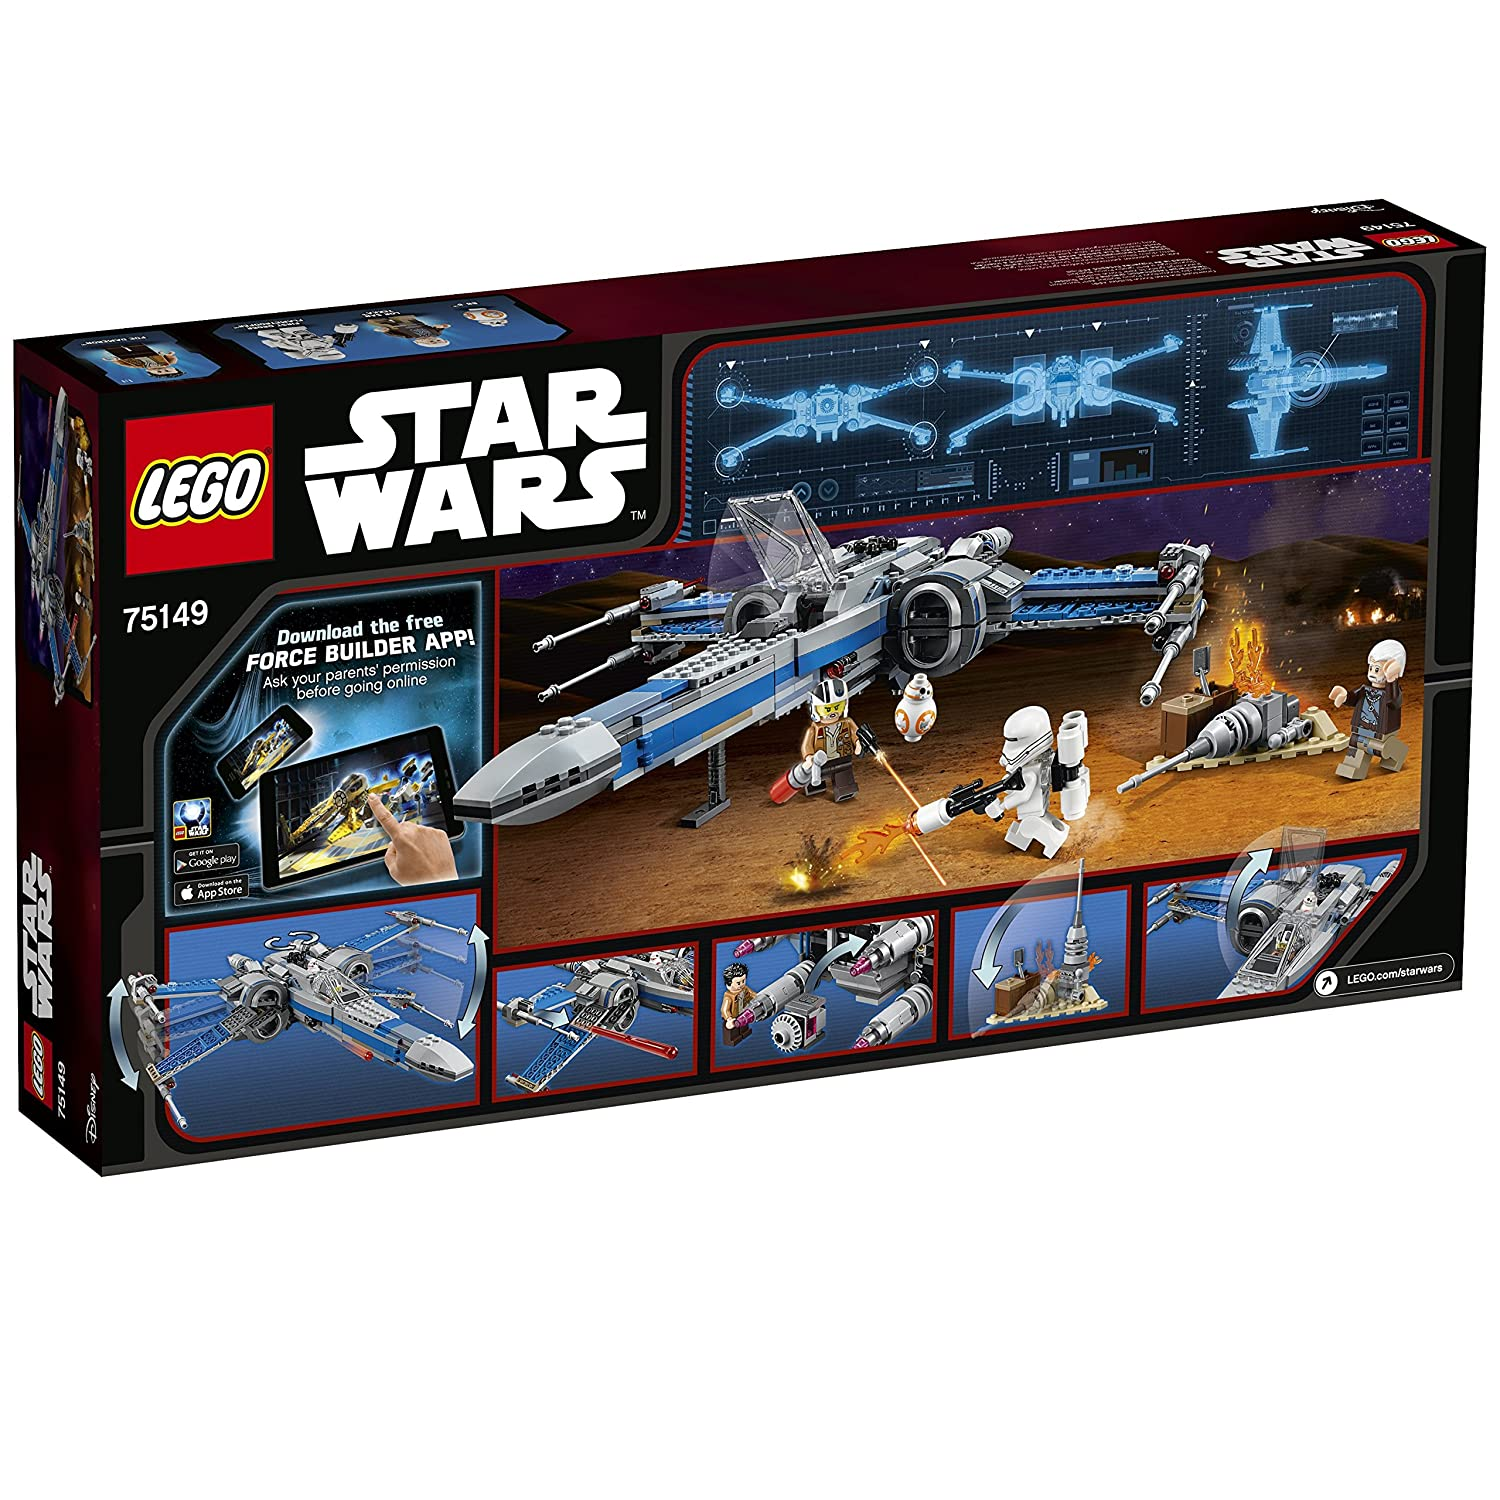 LEGO Star Wars 75149   Resistance X Wing Fighter: Amazon.de: Spielzeug